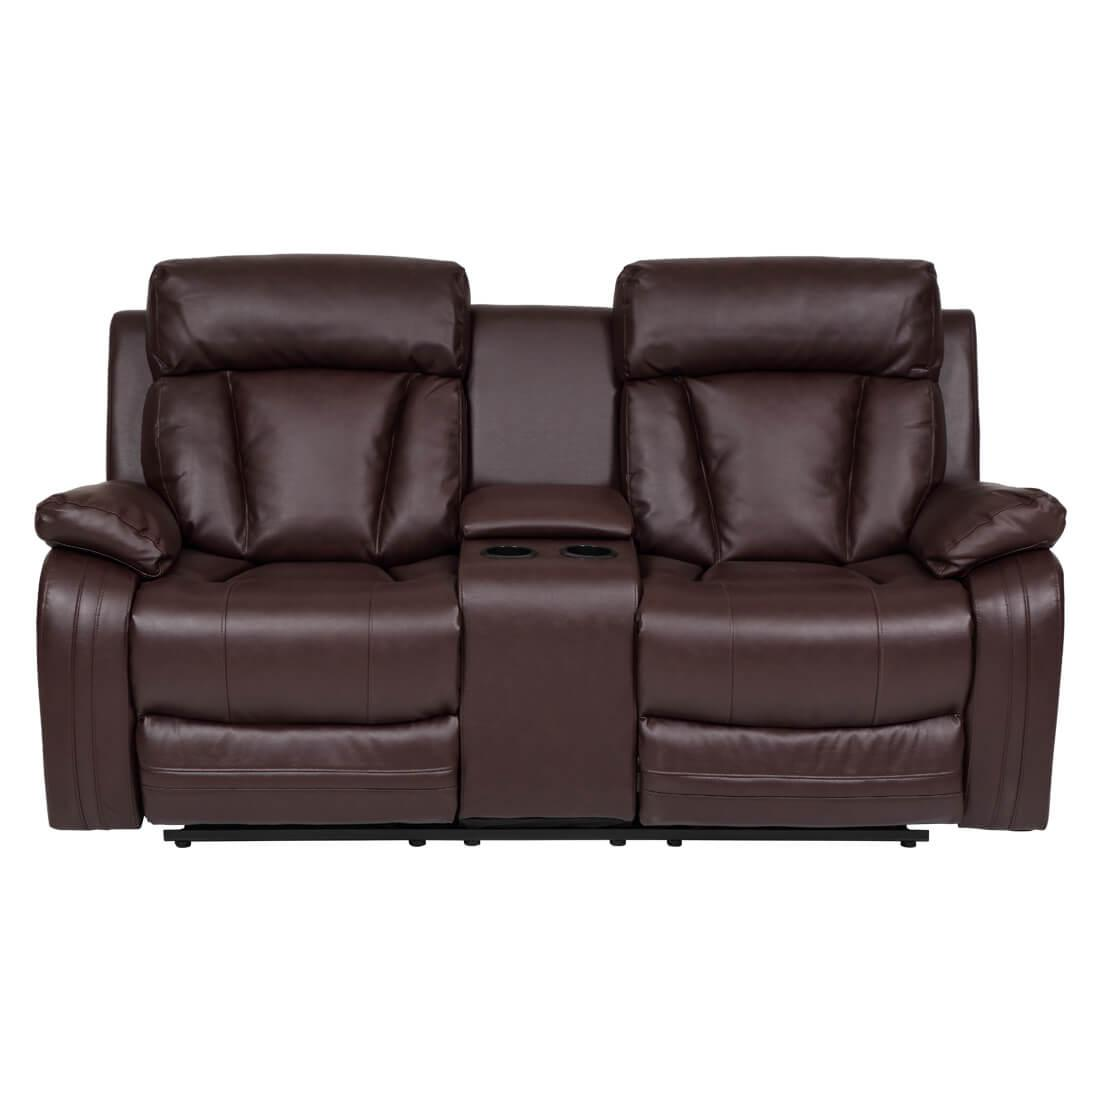 Magna Plus Leatherette Recliner Sofa